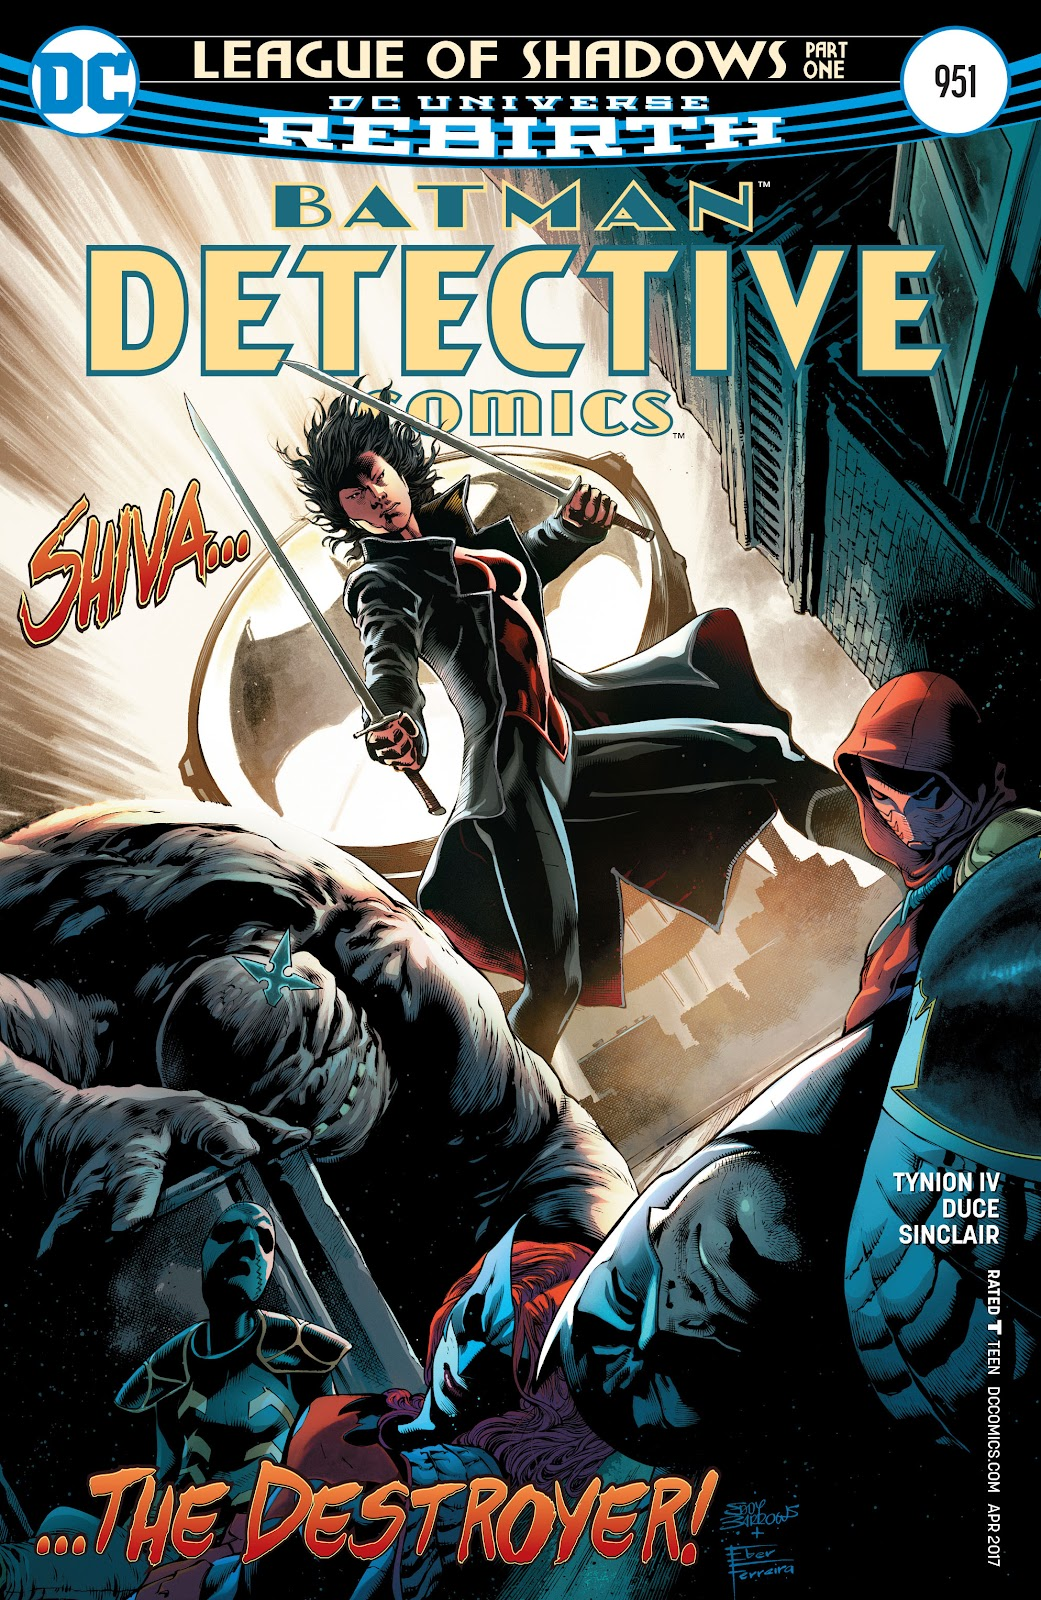 Detective Comics (2016) issue 951 - Page 1